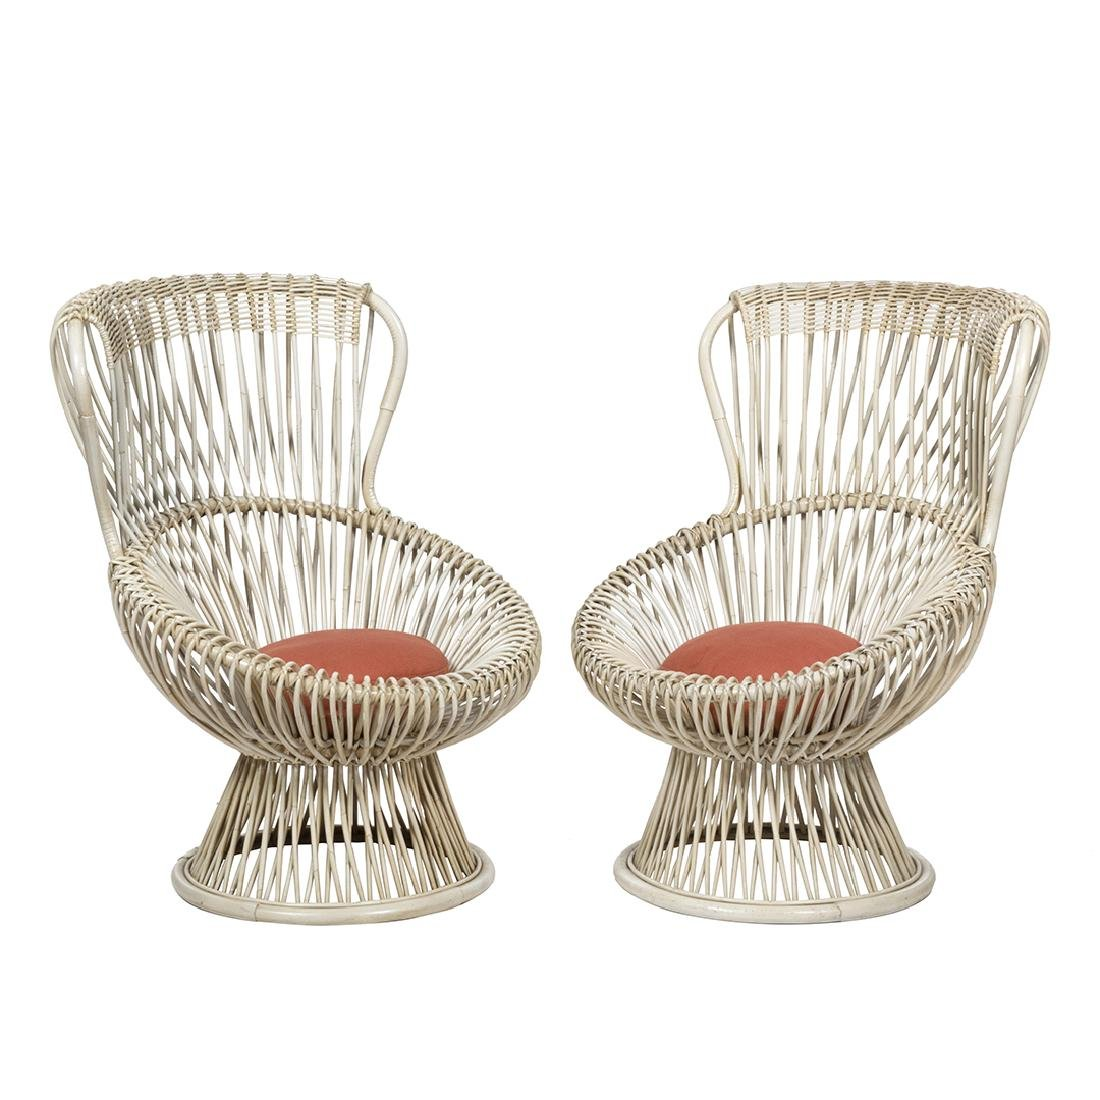 Franco Albini Margherita Chairs (2)